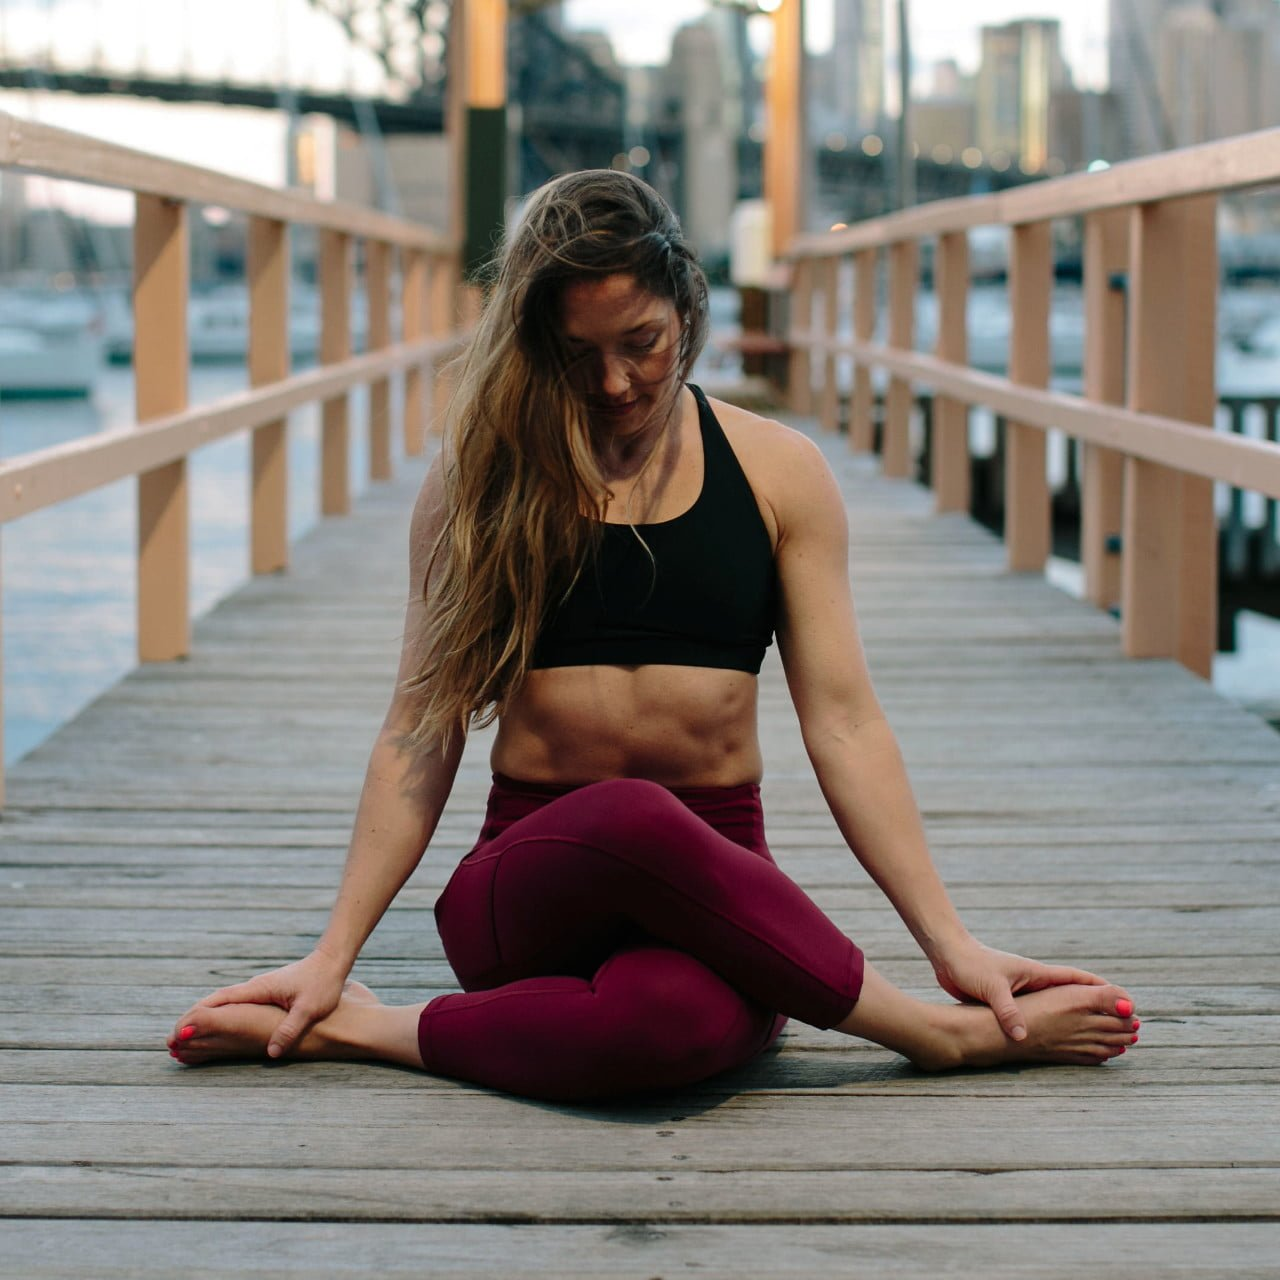 Kat Clayton yoga teacher runs yoga retreats, meditation and yoga teacher training in Sydney, Australia and worldwide